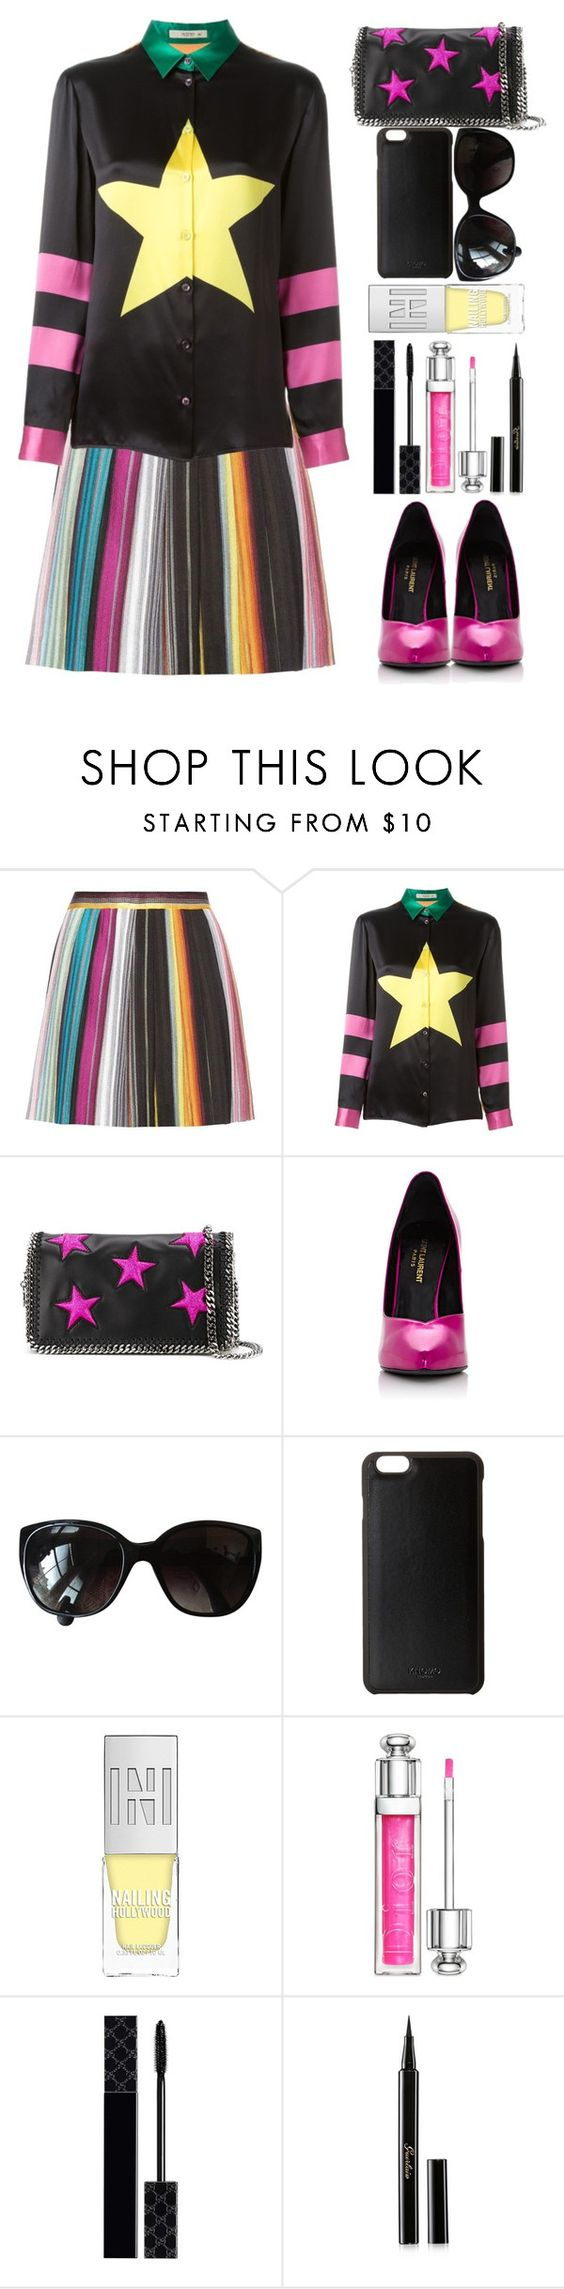 """""""star and stripes"""" by juliehalloran ❤ liked on Polyvore featuring Missoni, Etro, STELLA McCARTNEY, Yves Saint Laurent, Chanel, Knomo, Christian Dior, Gucci and Guerlain"""